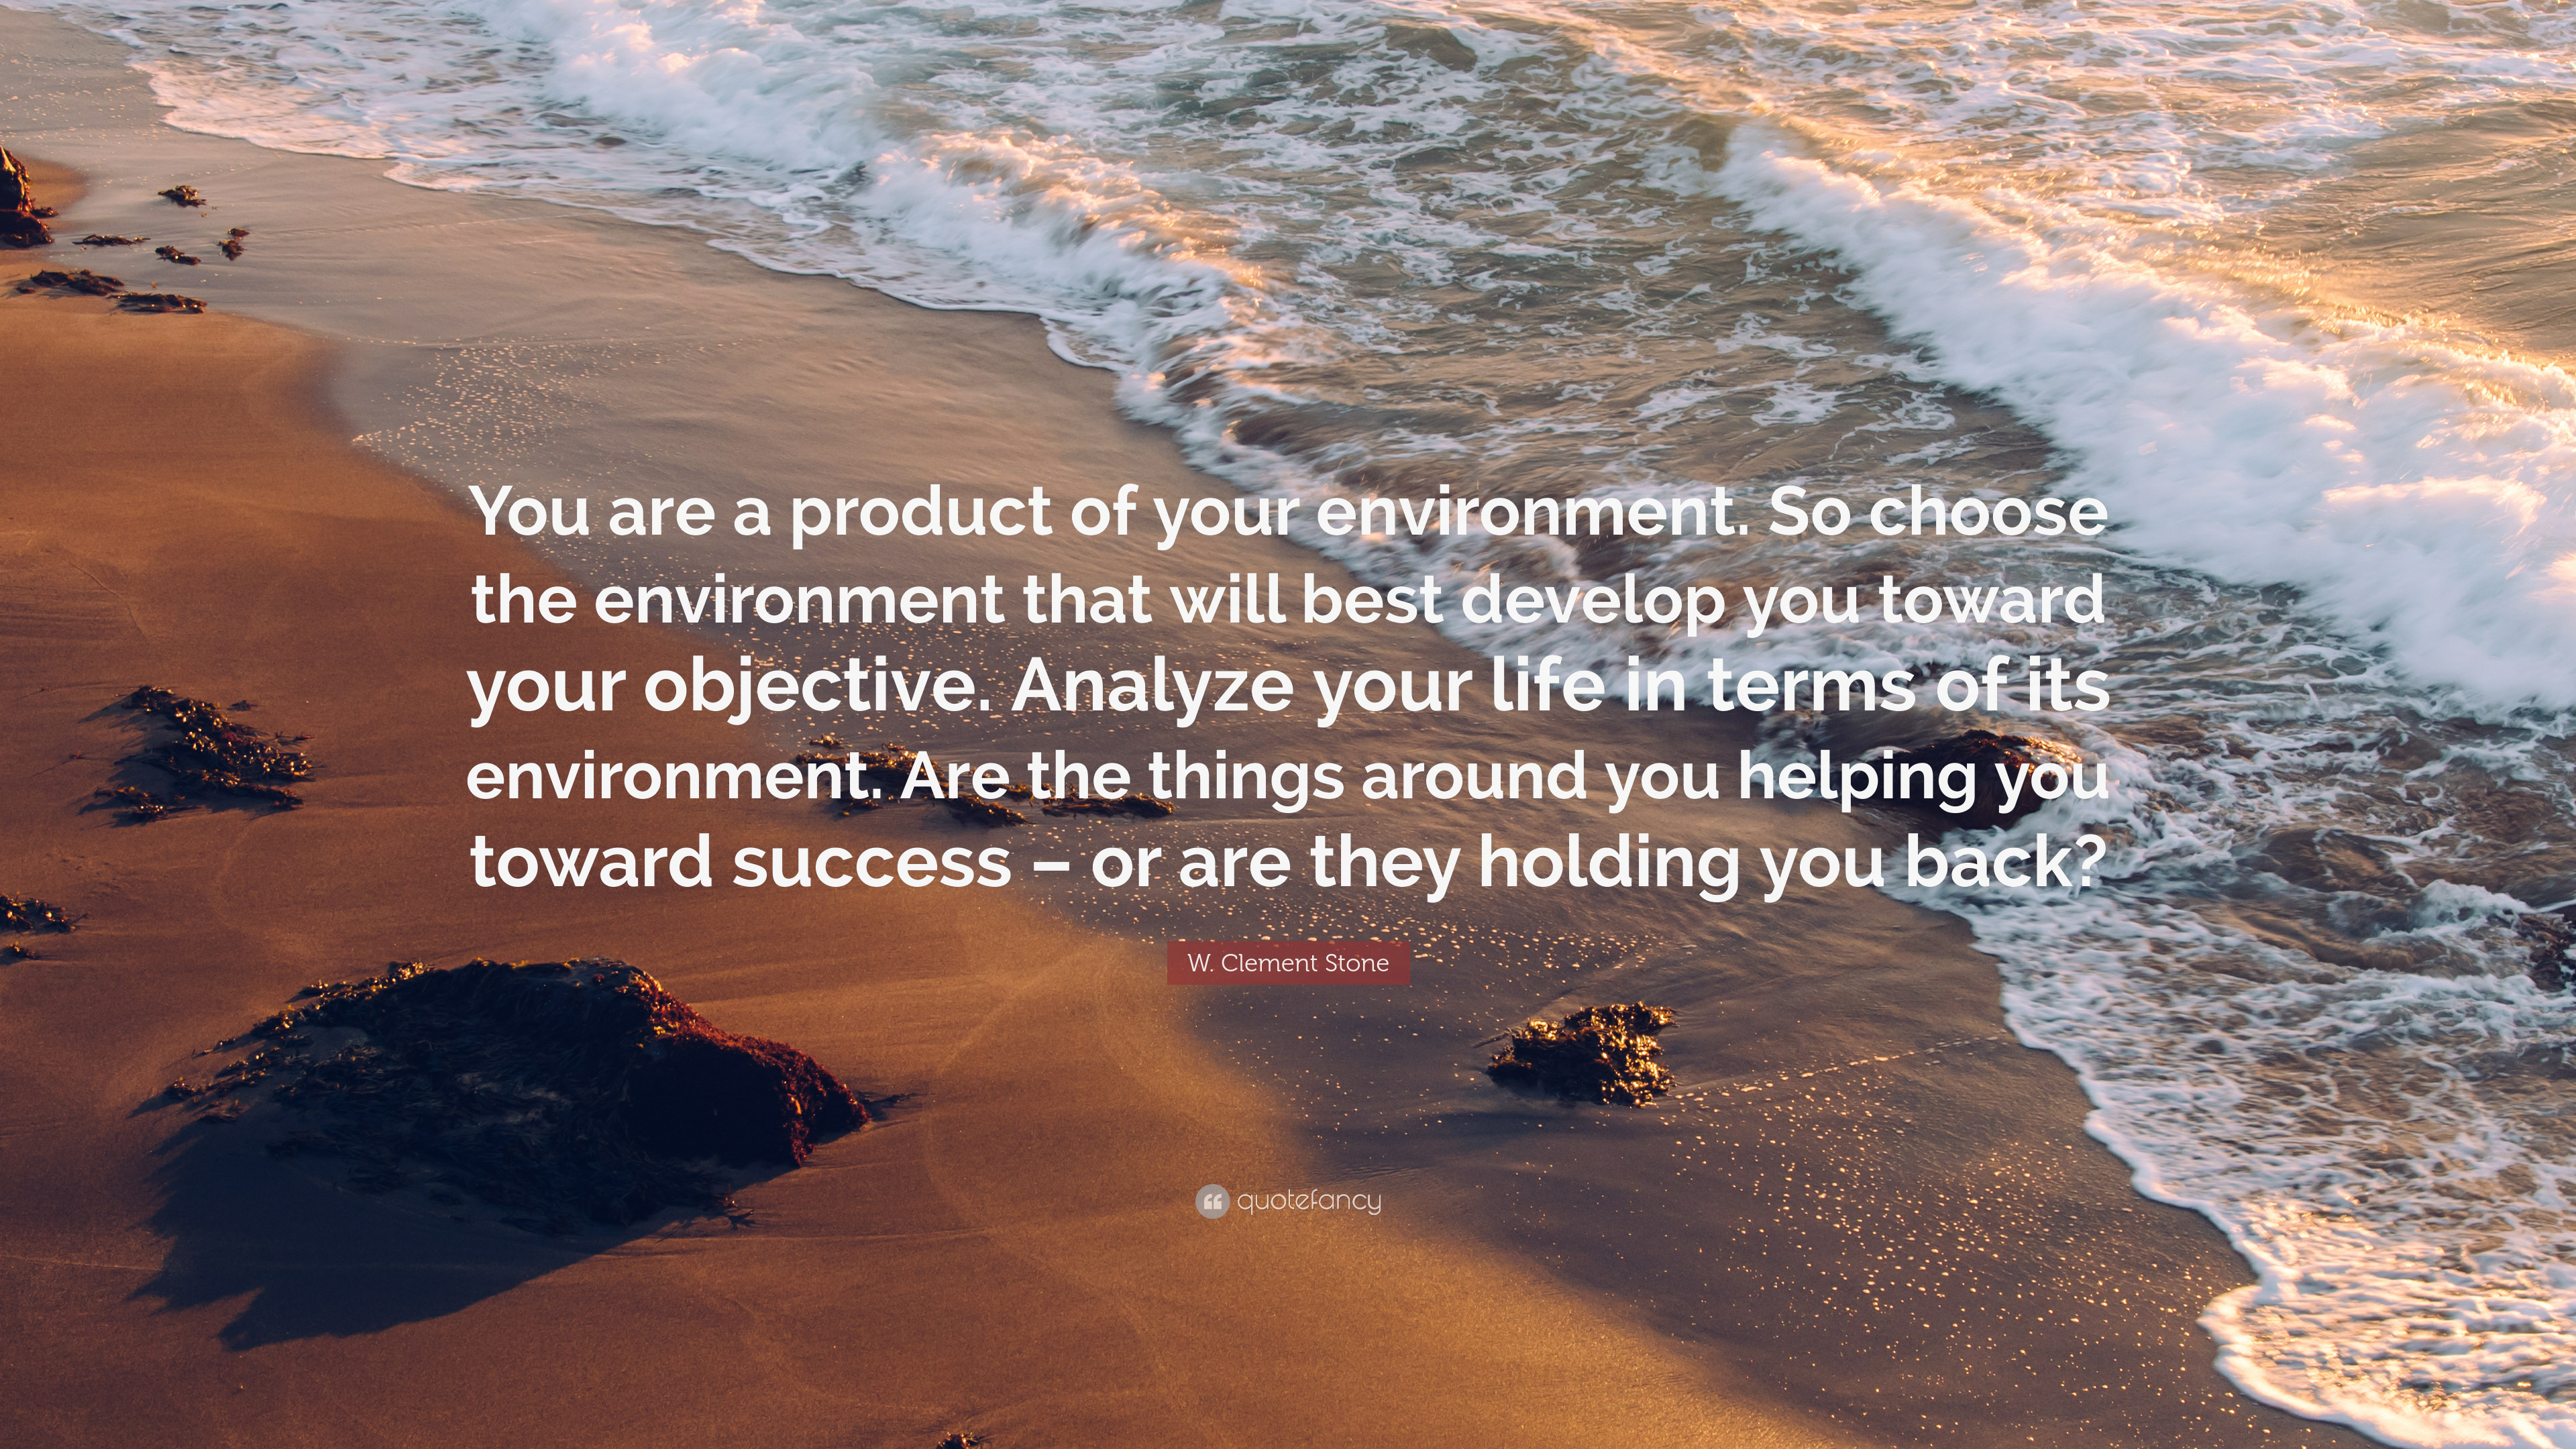 are you a product of your environment essay Most people don't particularly like the idea that they are merely products of their environment there may be a few exceptional individuals for whom this doesn't seem.